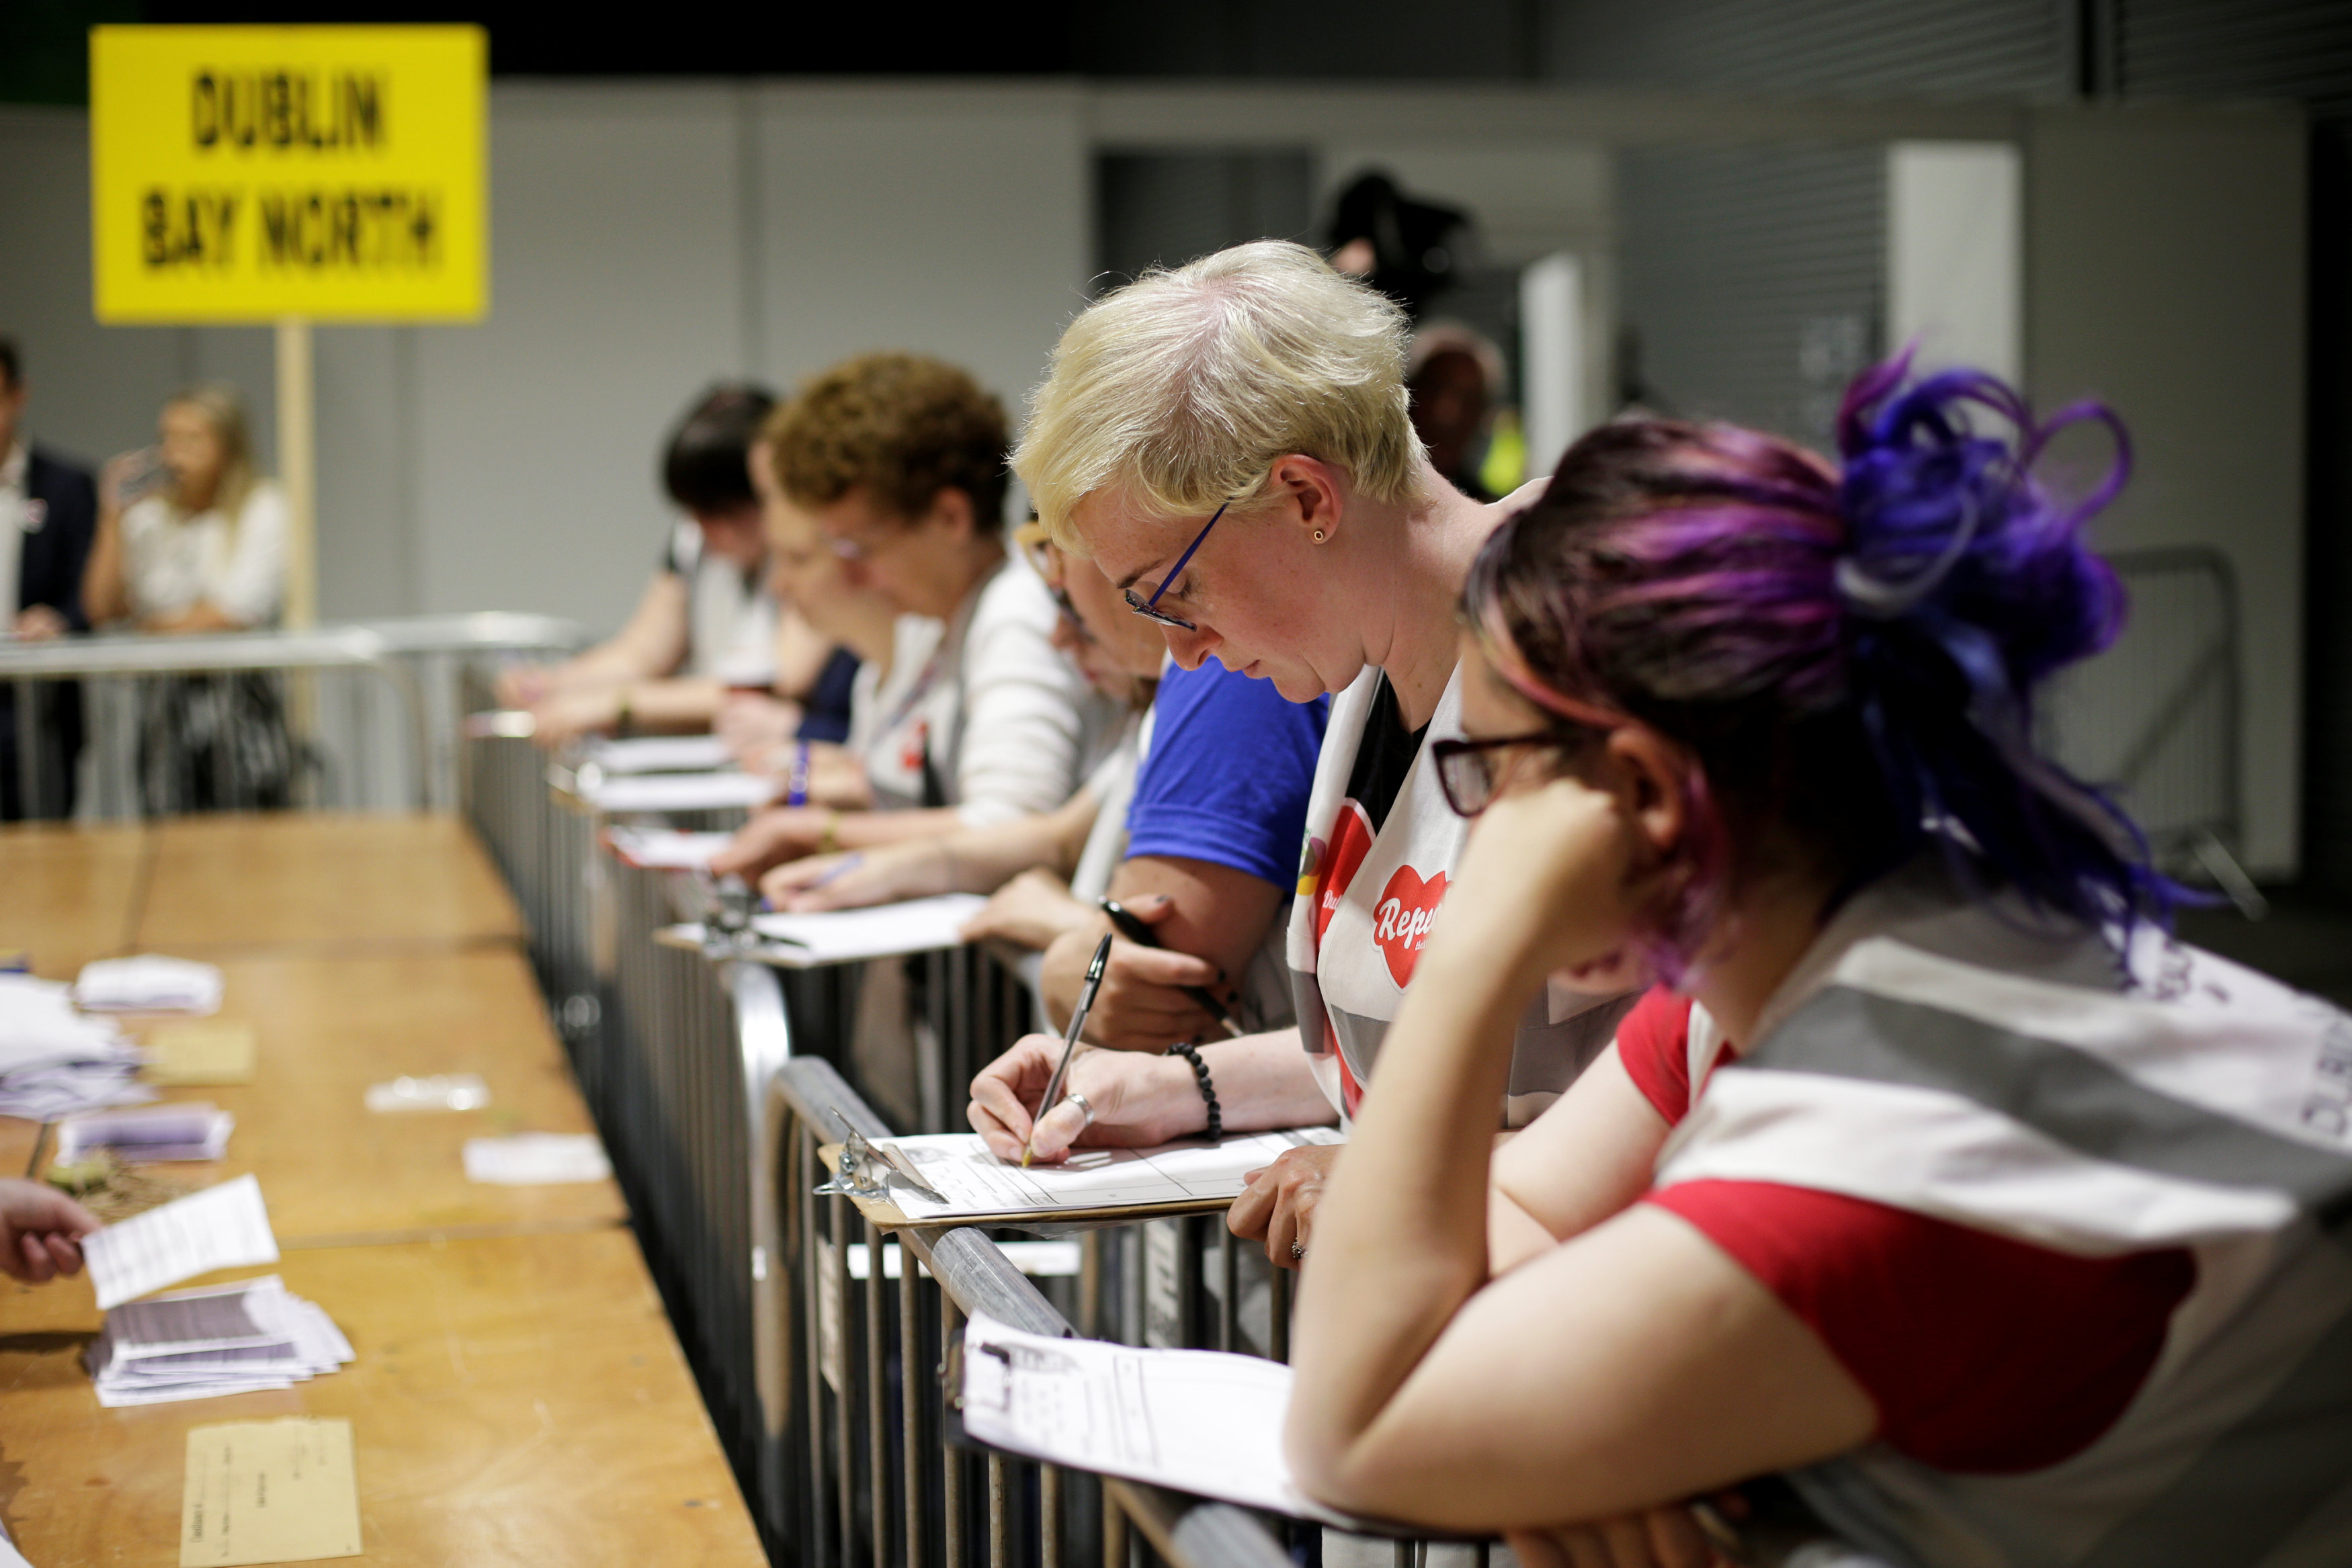 Observers watch as votes are tallied folowing yesterday's referendum on liberalizing abortion law, in Dublin, Ireland, May 26, 2018. REUTERS/Max Rossi